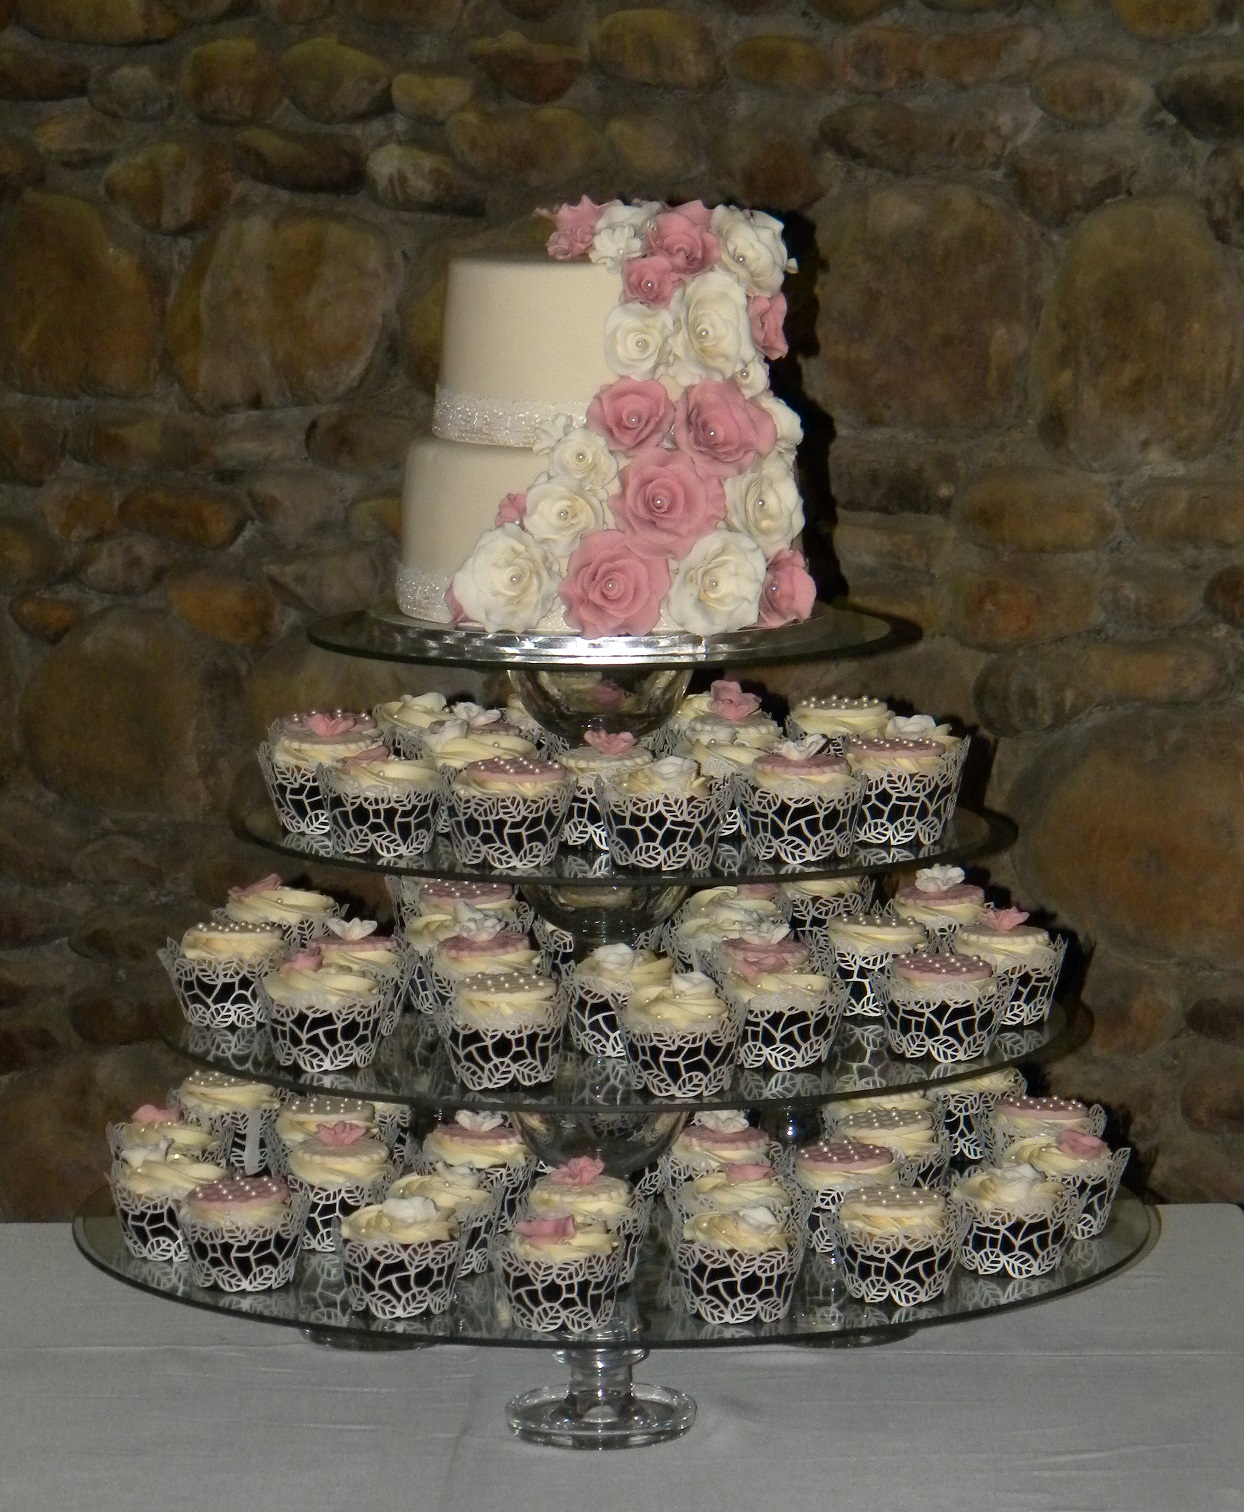 BITE ME CUPCAKES and WRAPPERS MINK & CREAM WEDDING CAKE